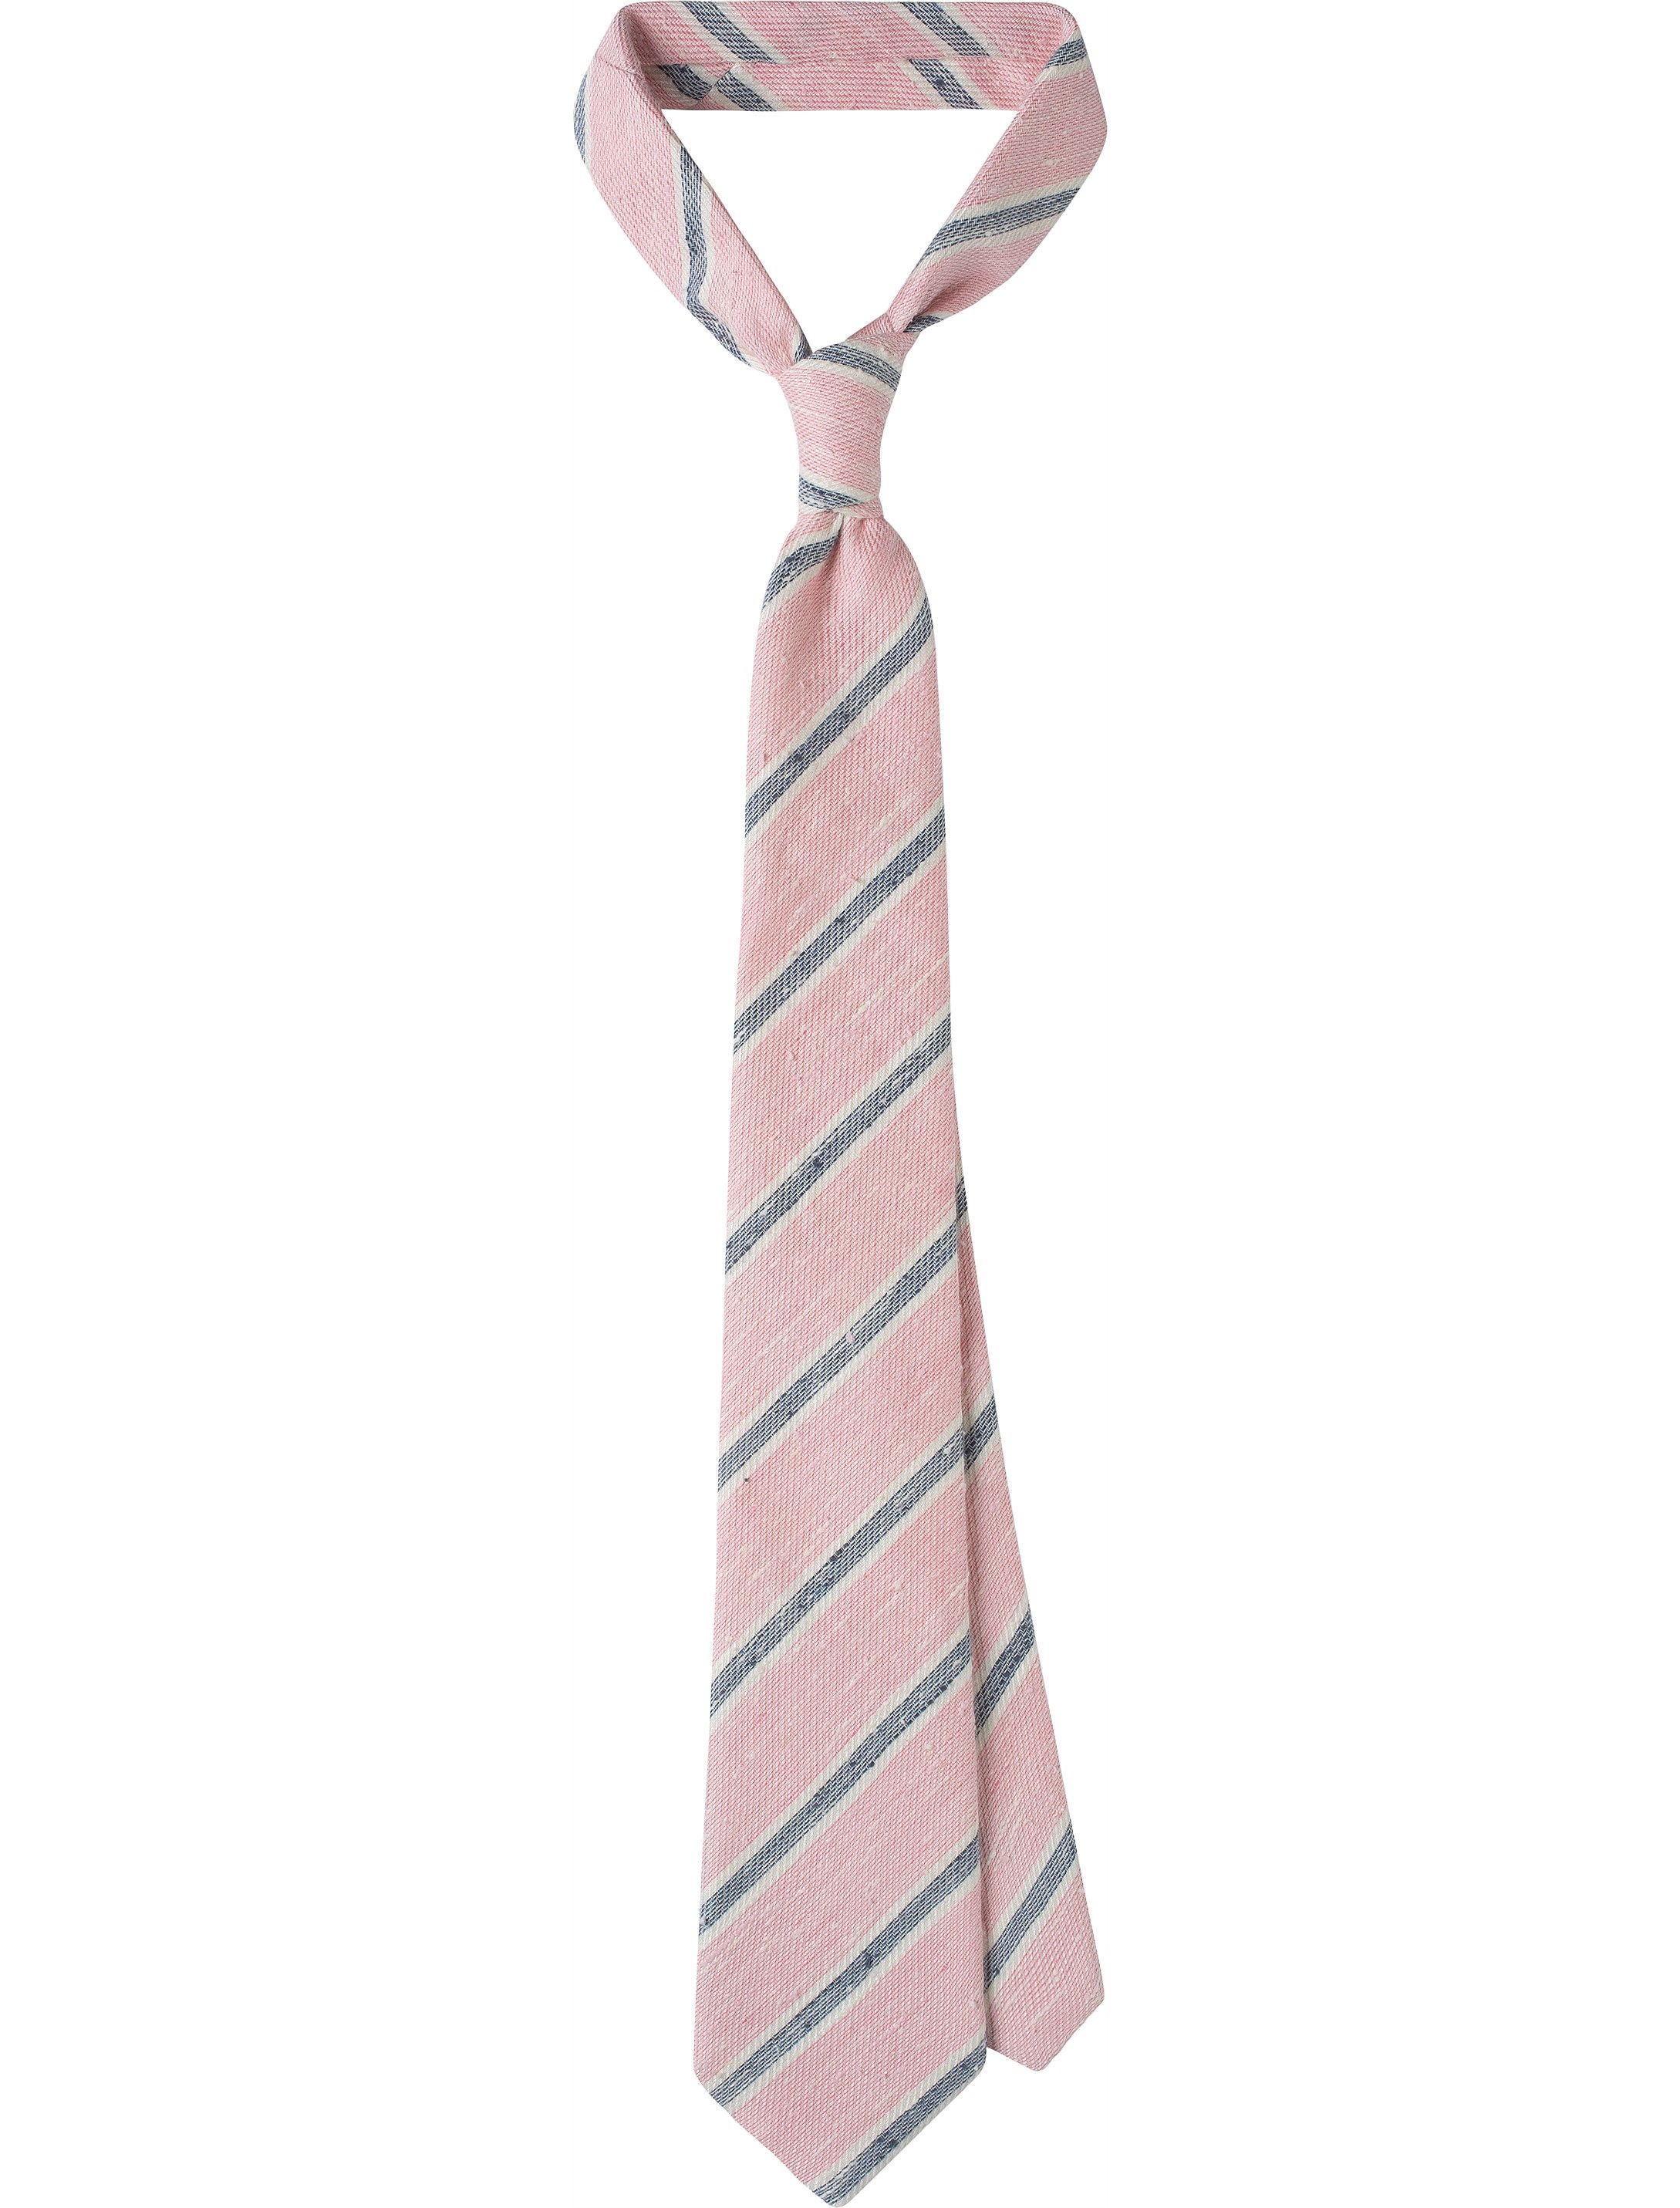 Pin by Colin Grant on Accessories - Ties, Tie Bars & Pocket Squares ...